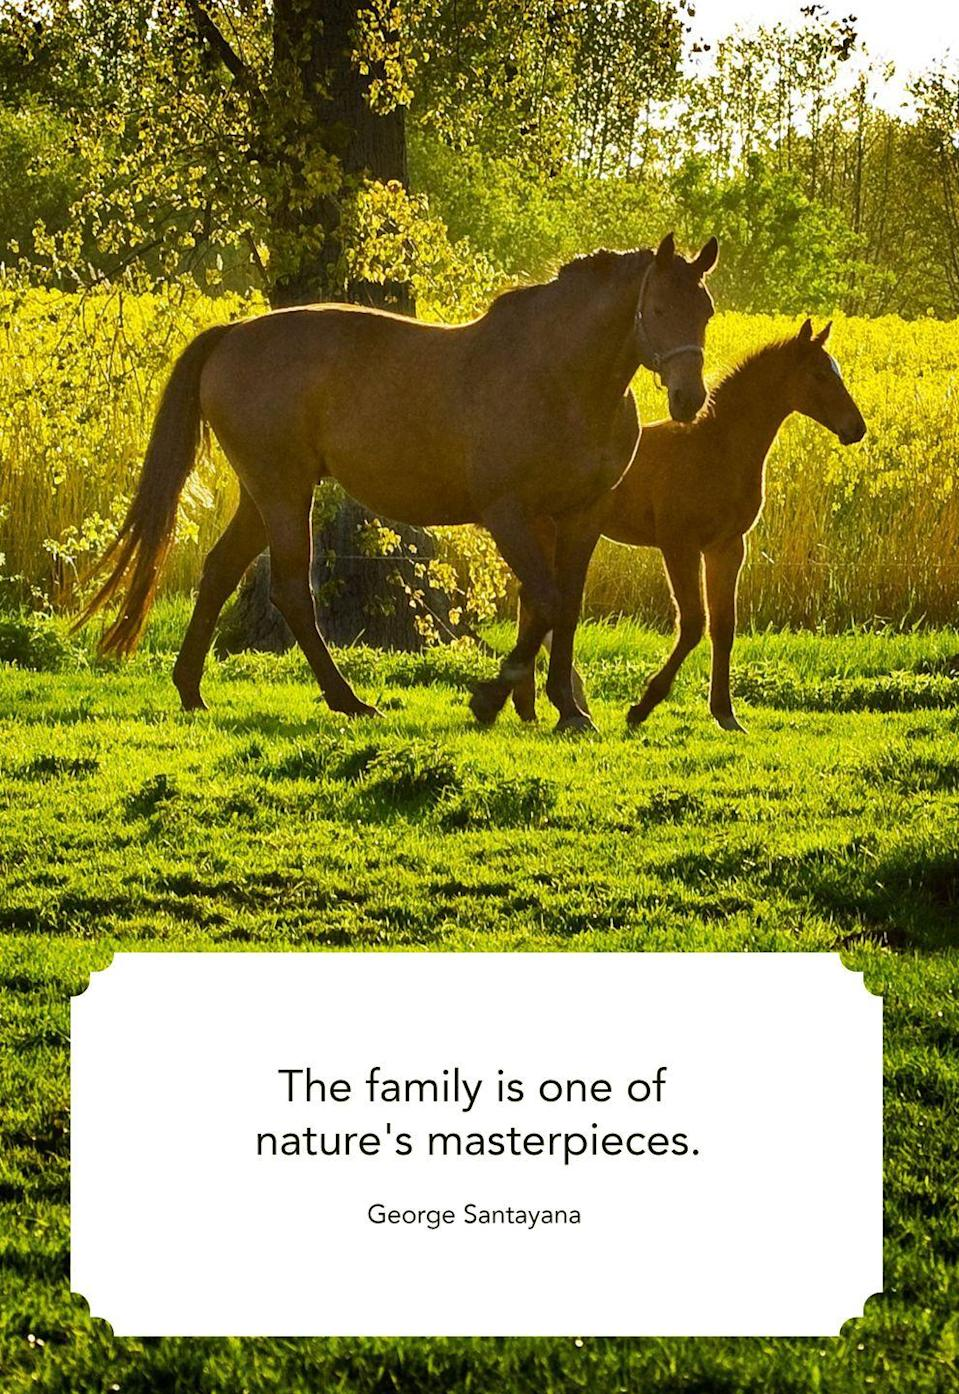 "<p>""The family is one of nature's masterpieces.""</p>"